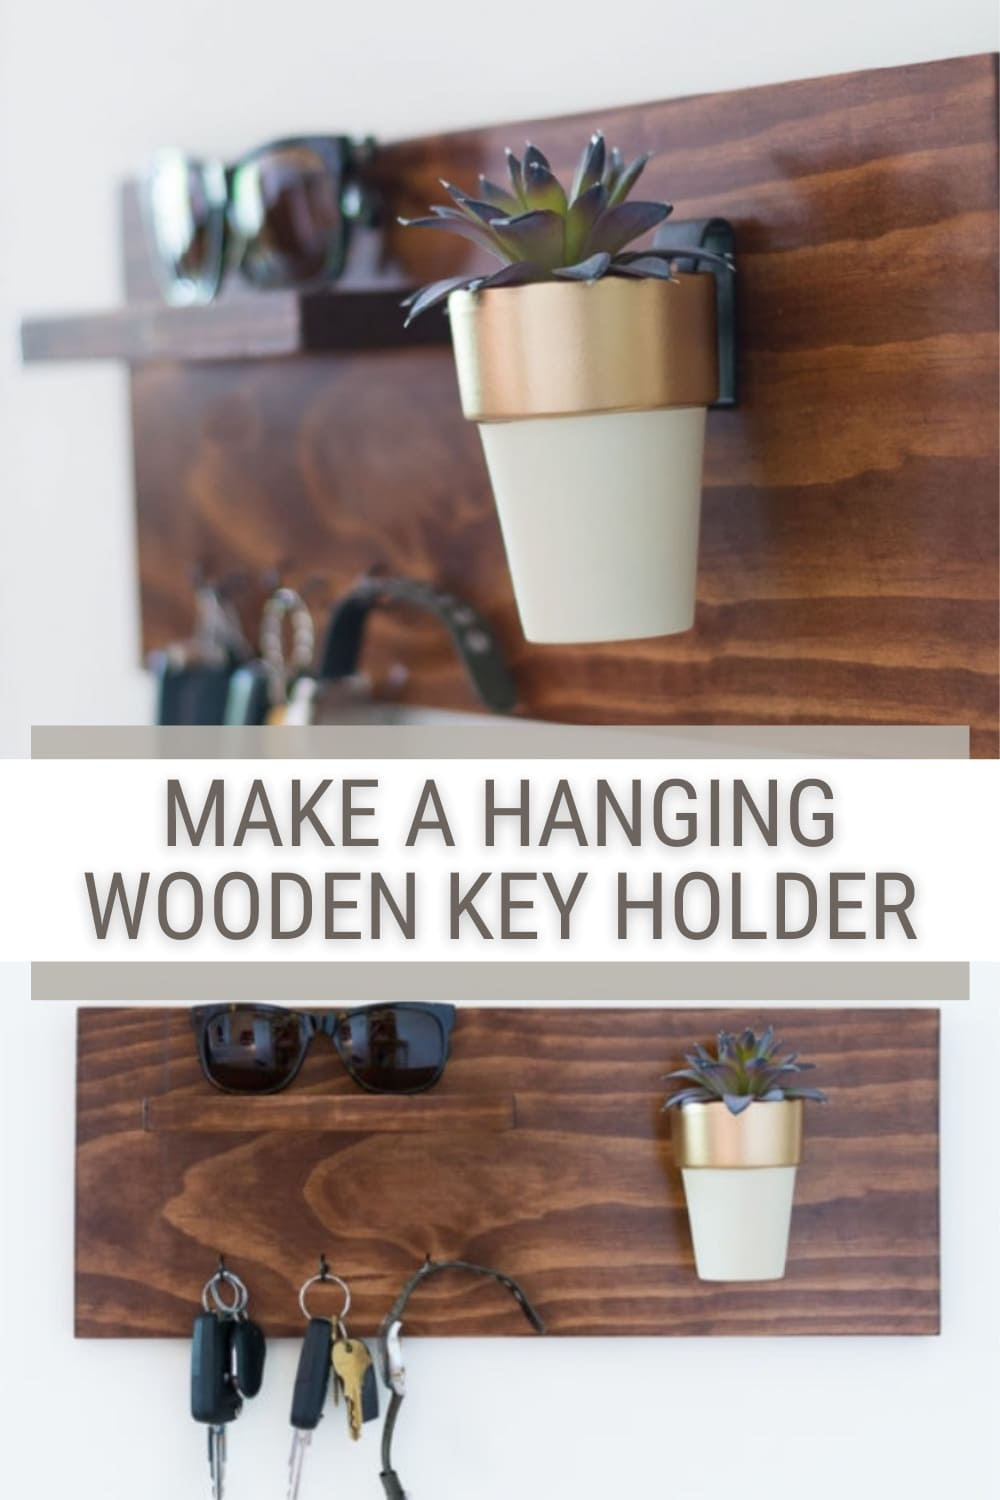 two images of wooden key holder with text Make a Hanging Wooden Key Holder